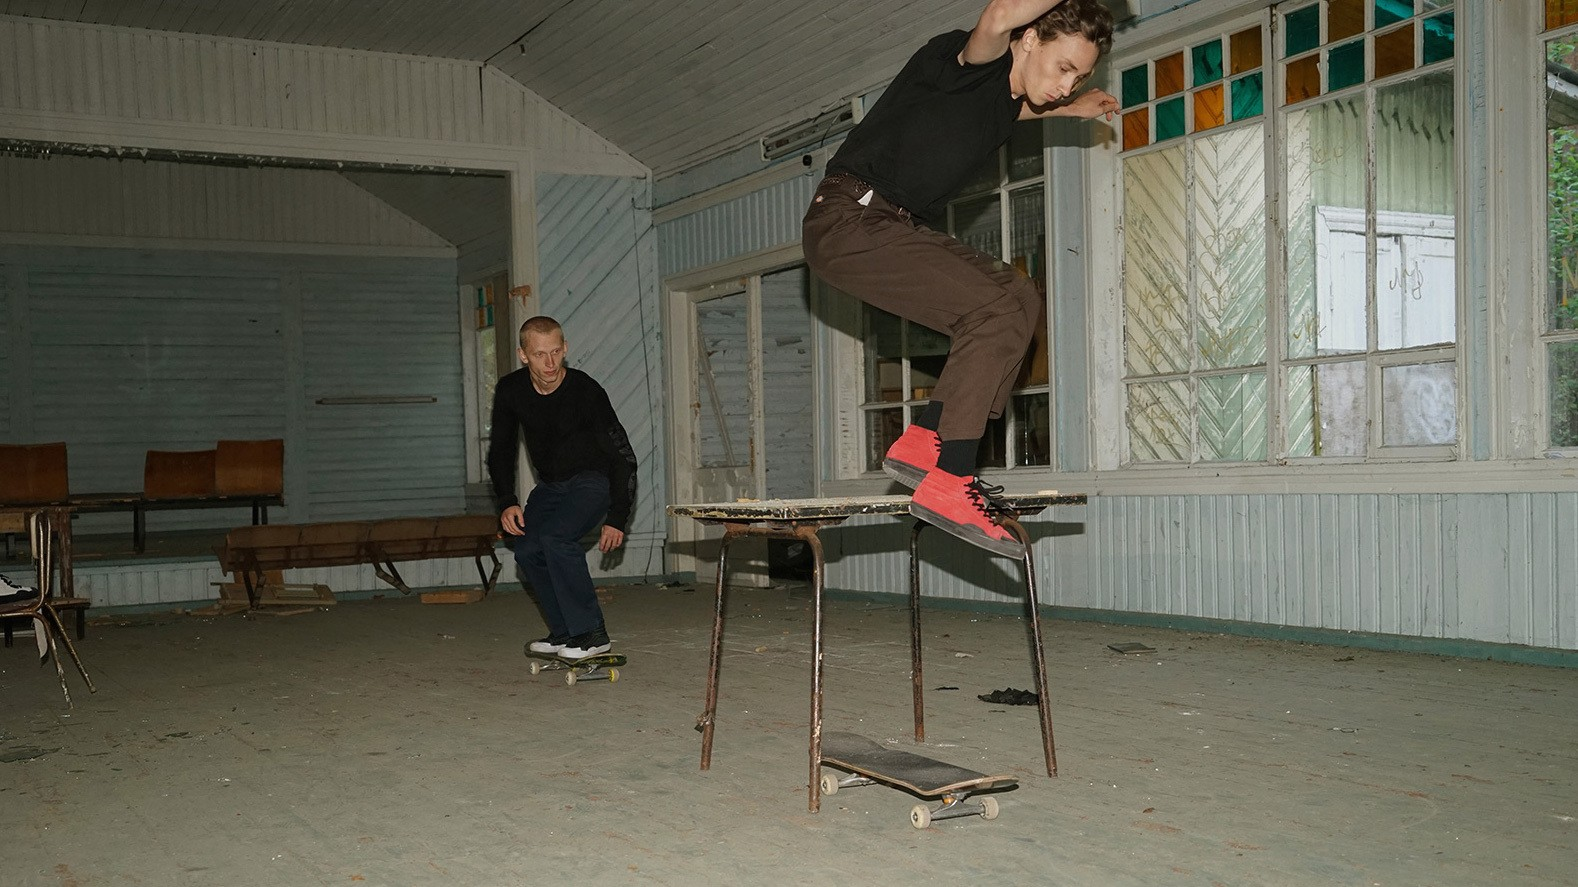 gosha rubchinskiy and vans continue their collaboration for autumn/winter 15